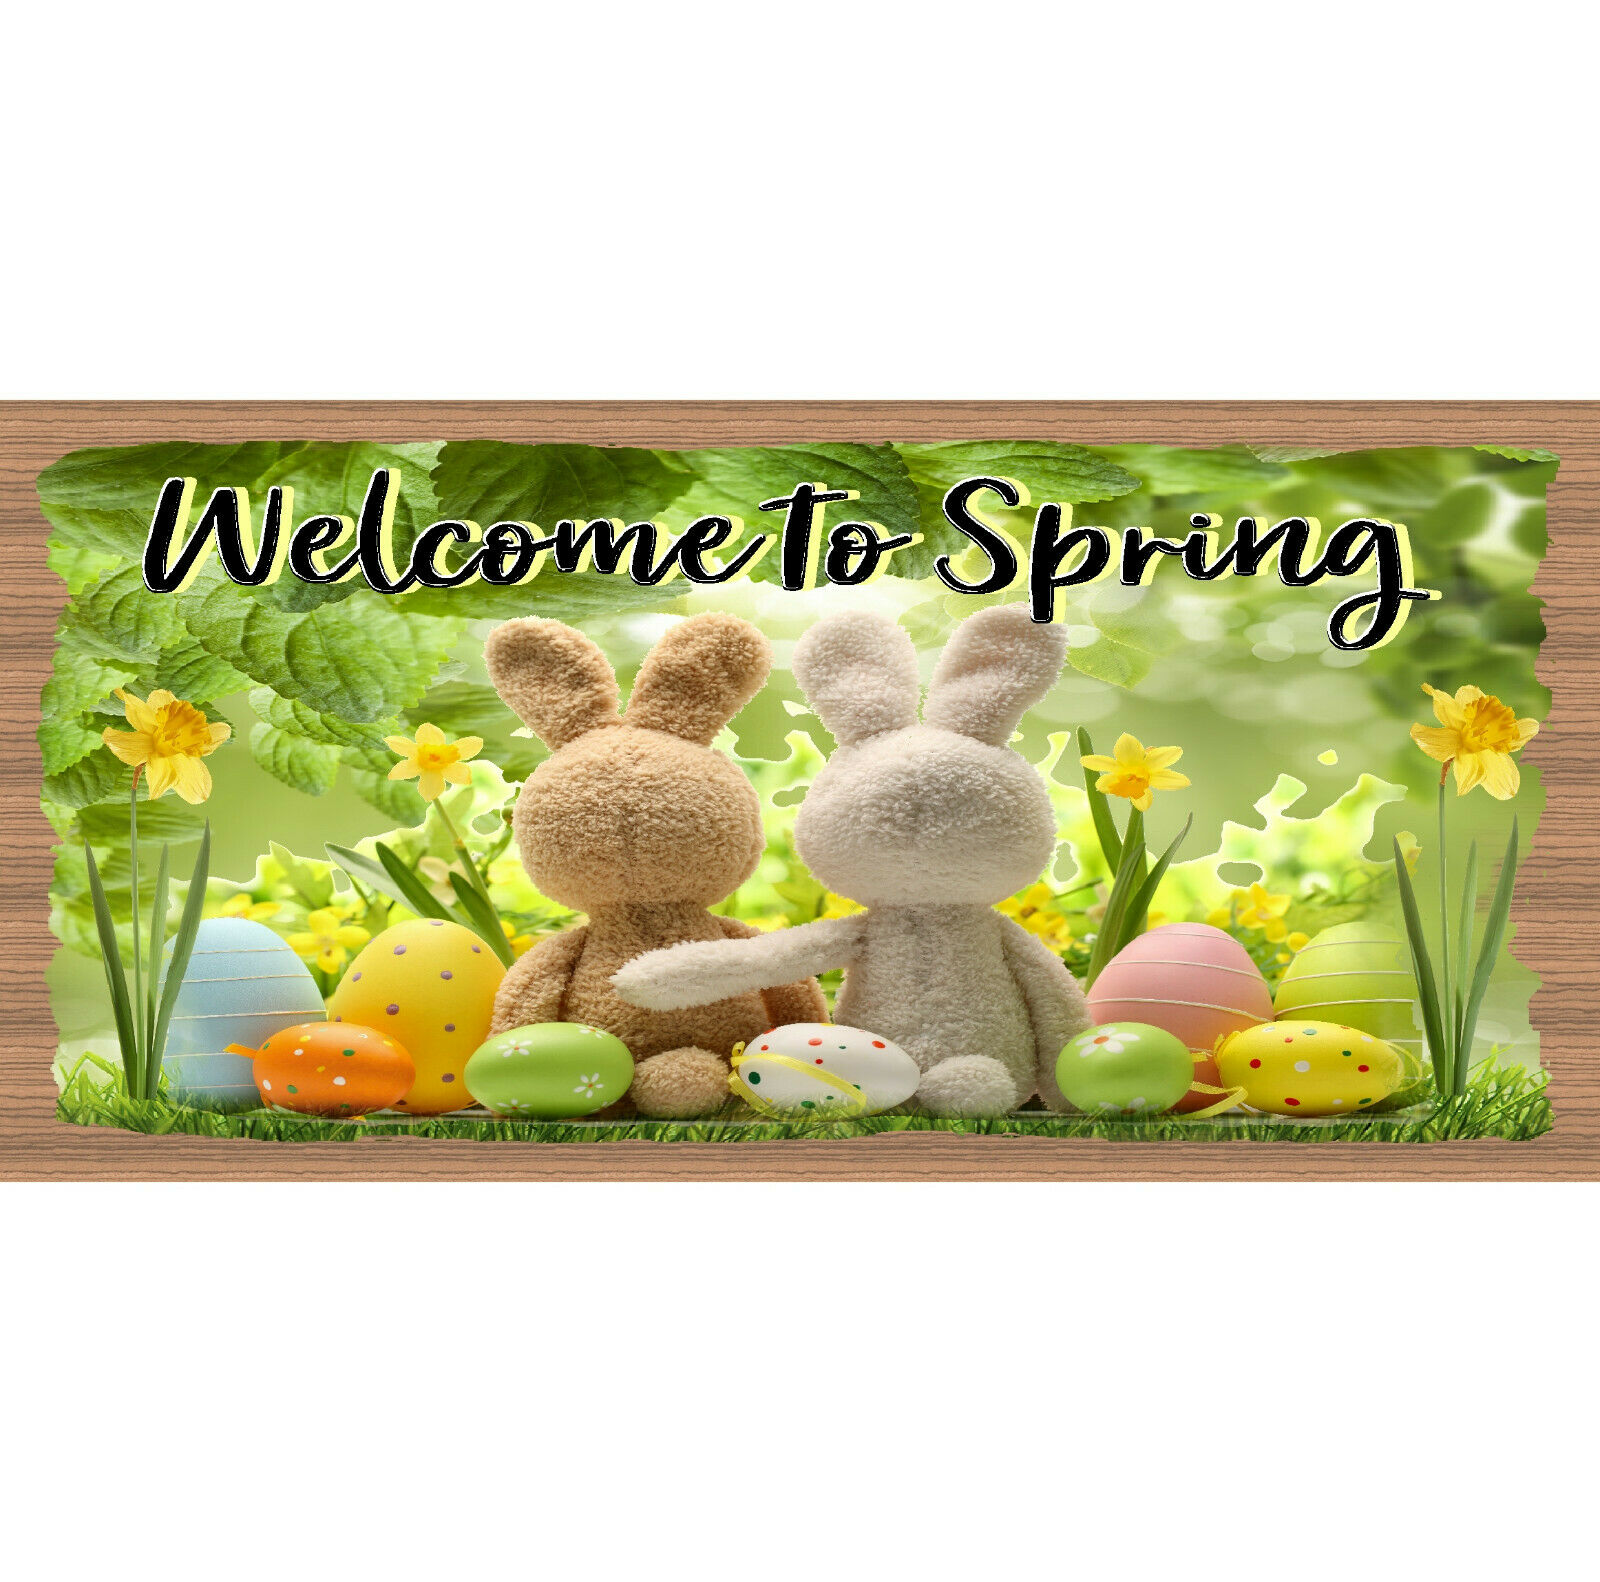 Easter Wood Signs - Welcome to Spring - GS 979- Easter Decor